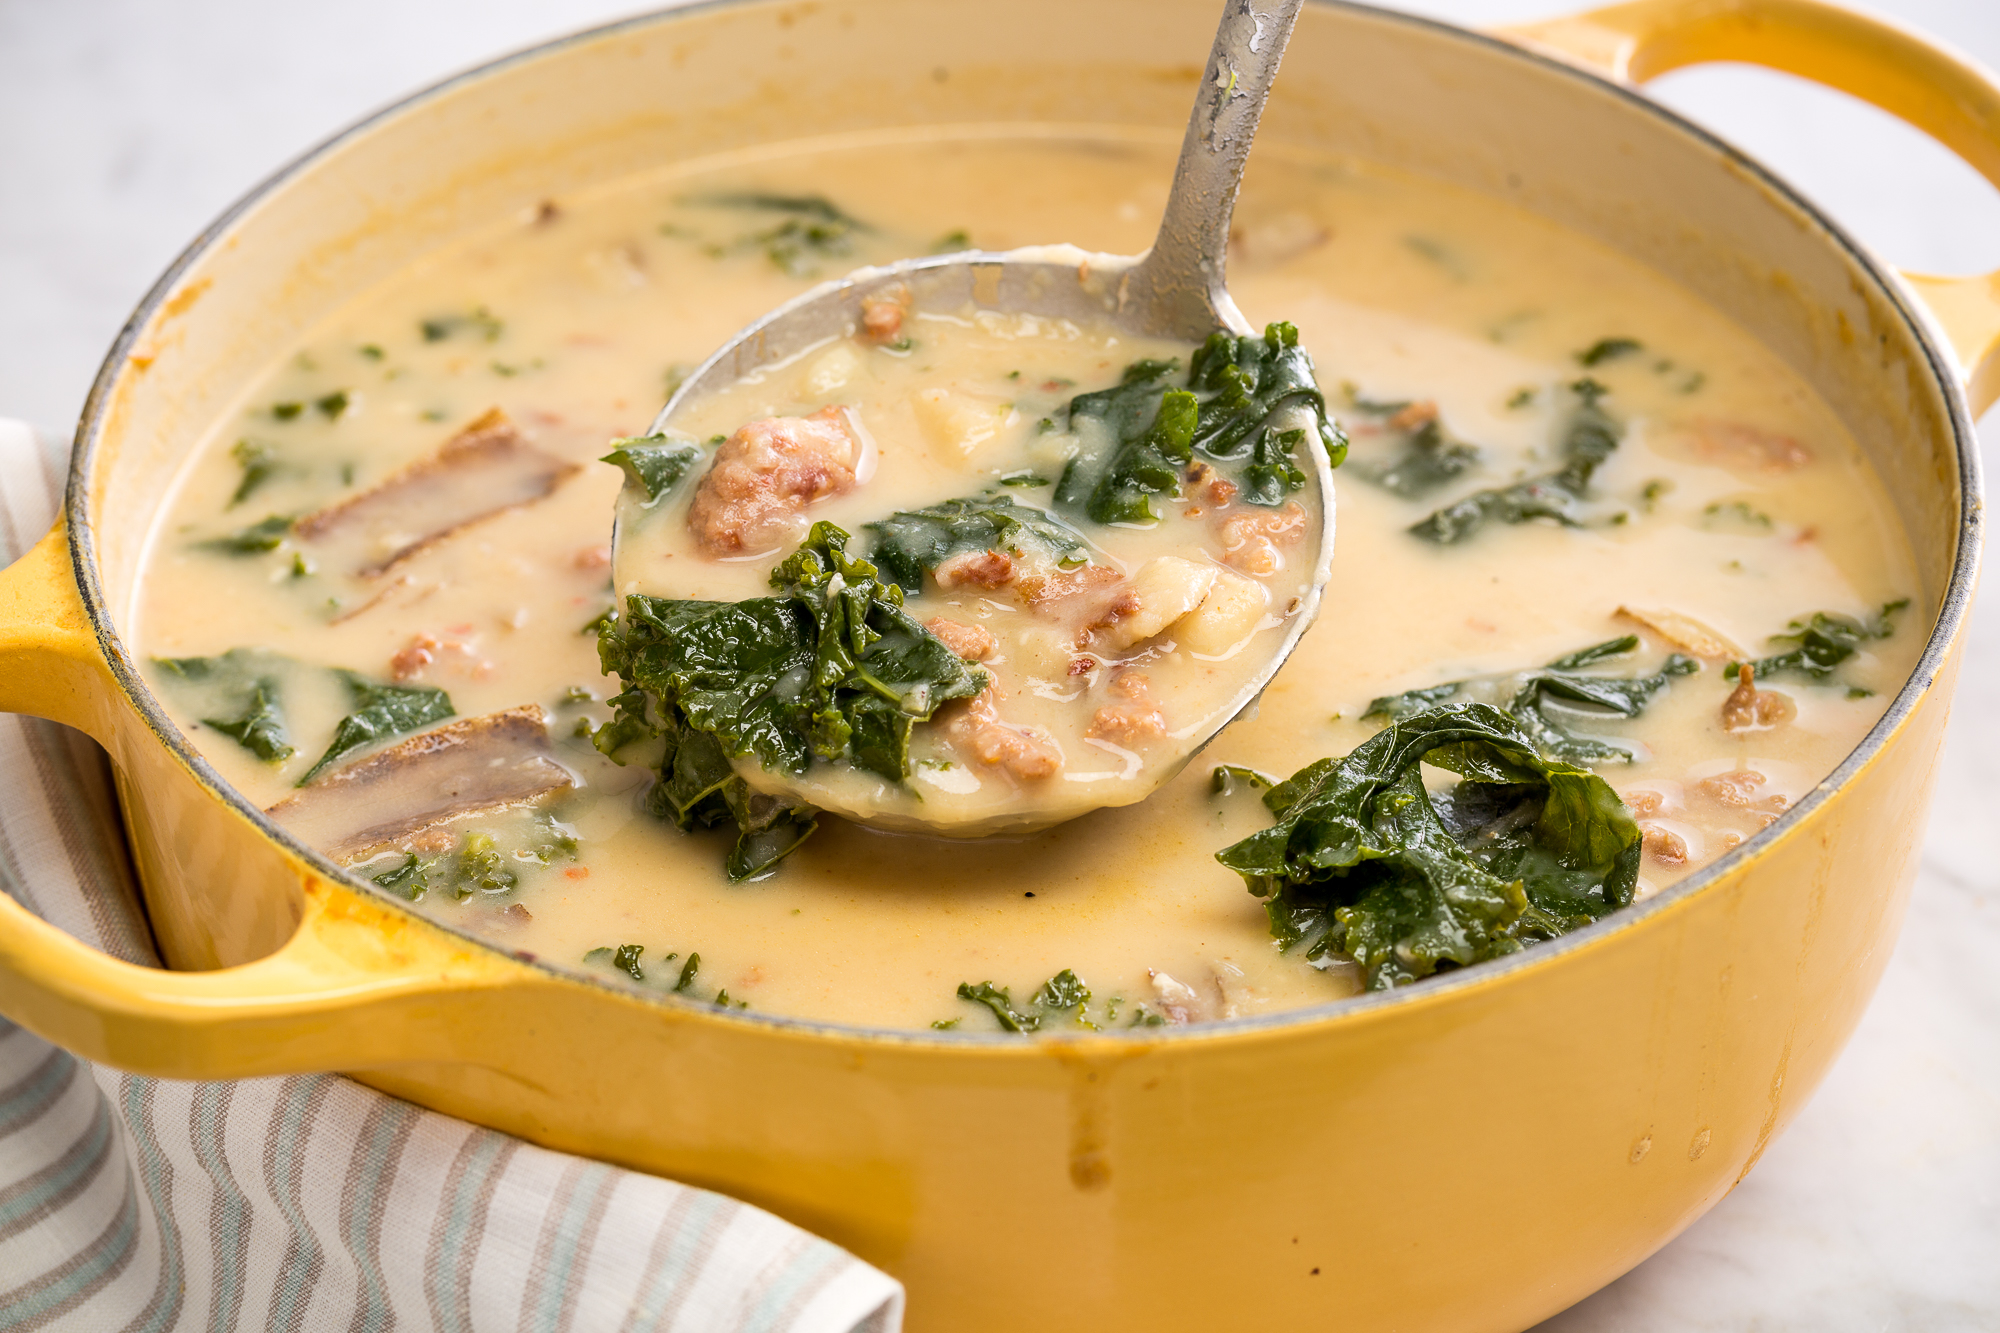 Olive garden zuppa toscana recipe olive garden tuscan - What kind of soup does olive garden have ...